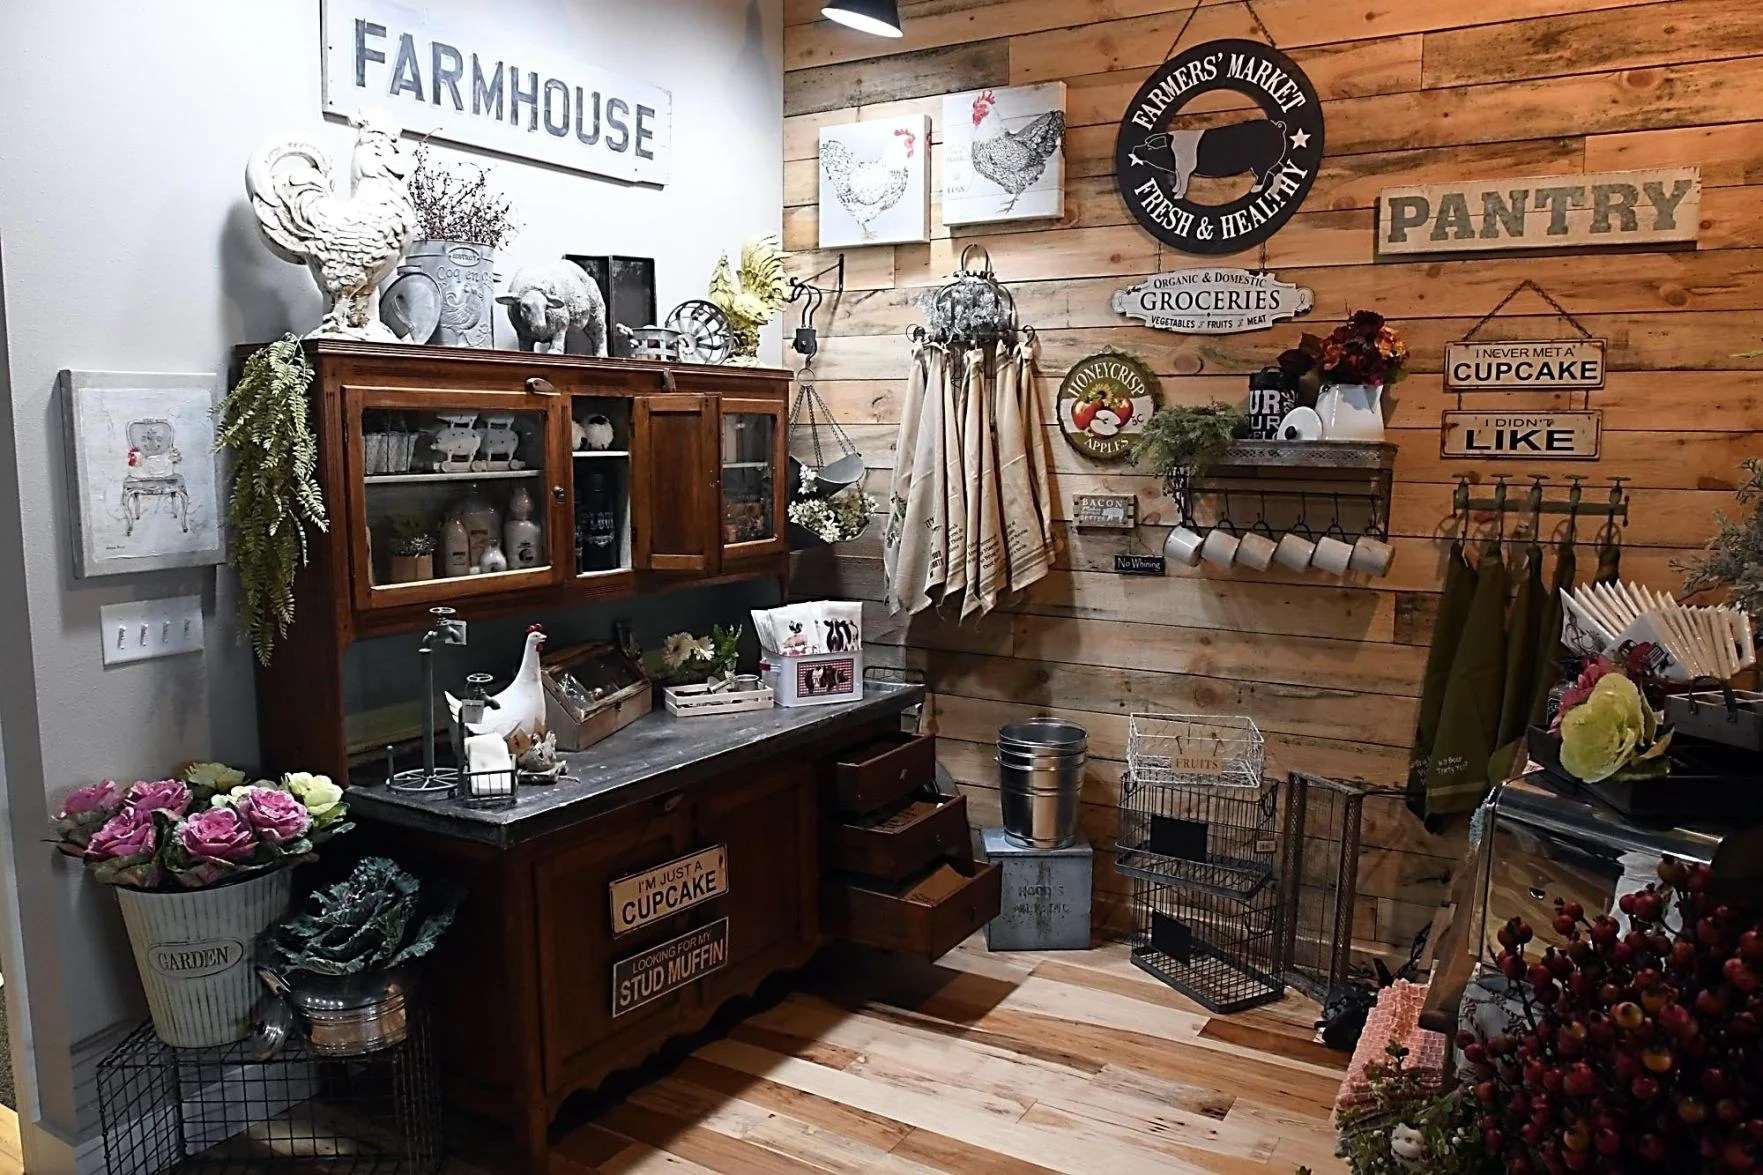 Farmhouse Coffee Shop New Coffee Shop Decor Business In North Mankato News